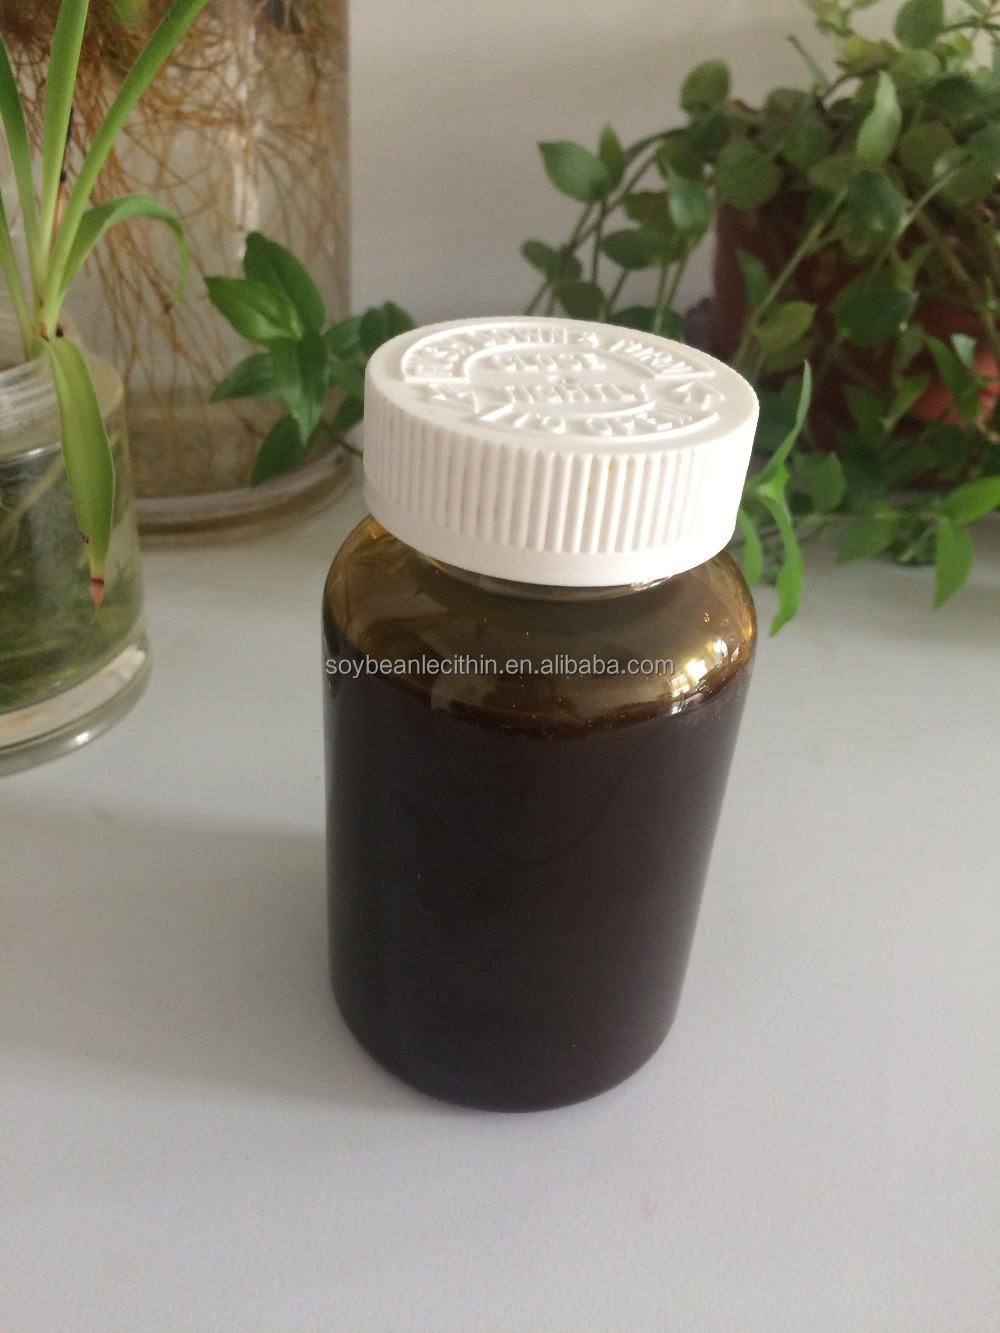 Food grade soya lecithin release agent for cake,wafer